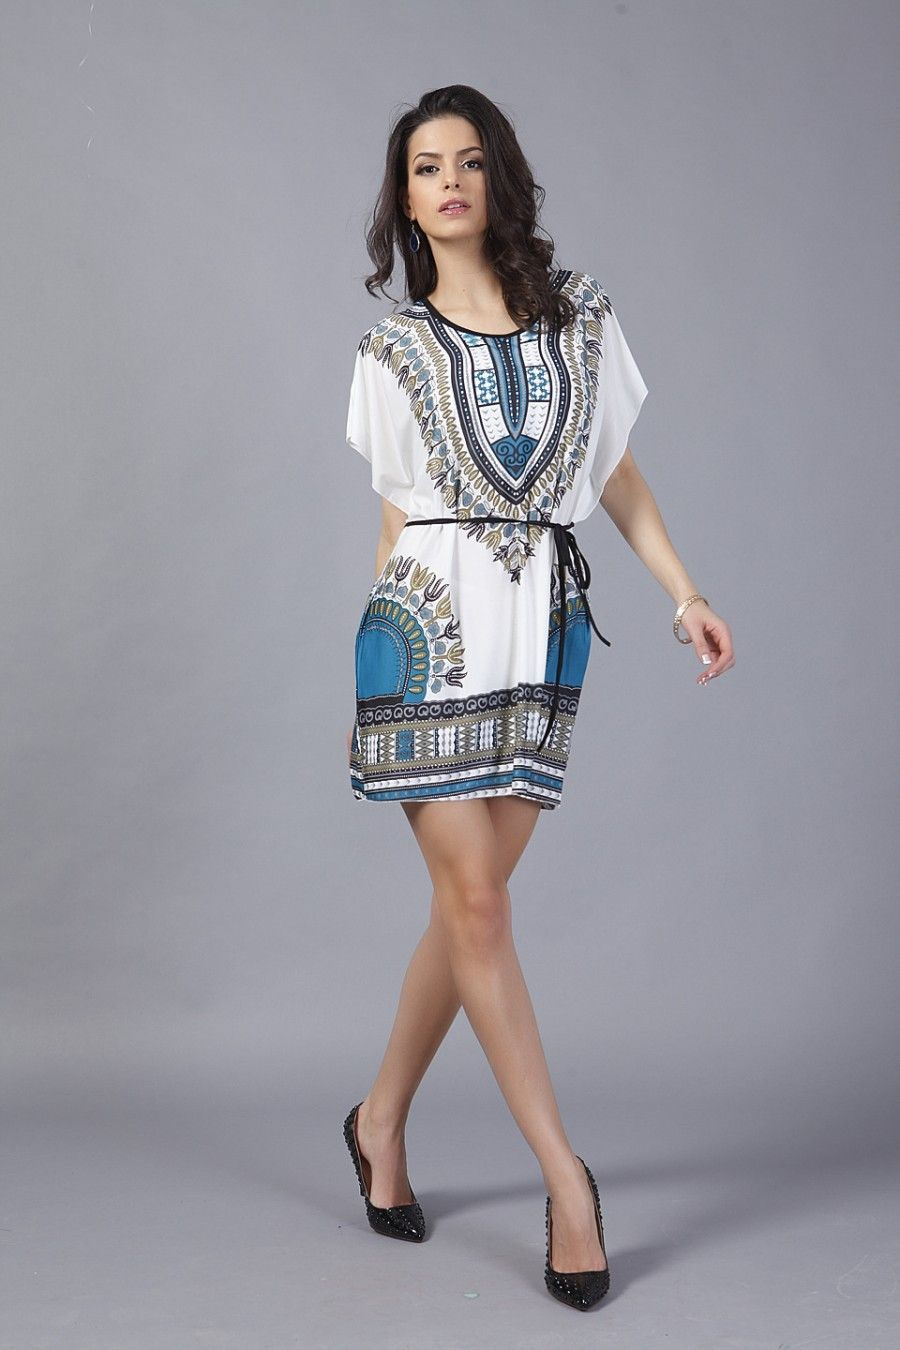 017e7828ec8 New African Dress New Summer Fashion Traditional Dresses For Women Female  African Clothing Dashiki Print Big Size Tunic Shirt